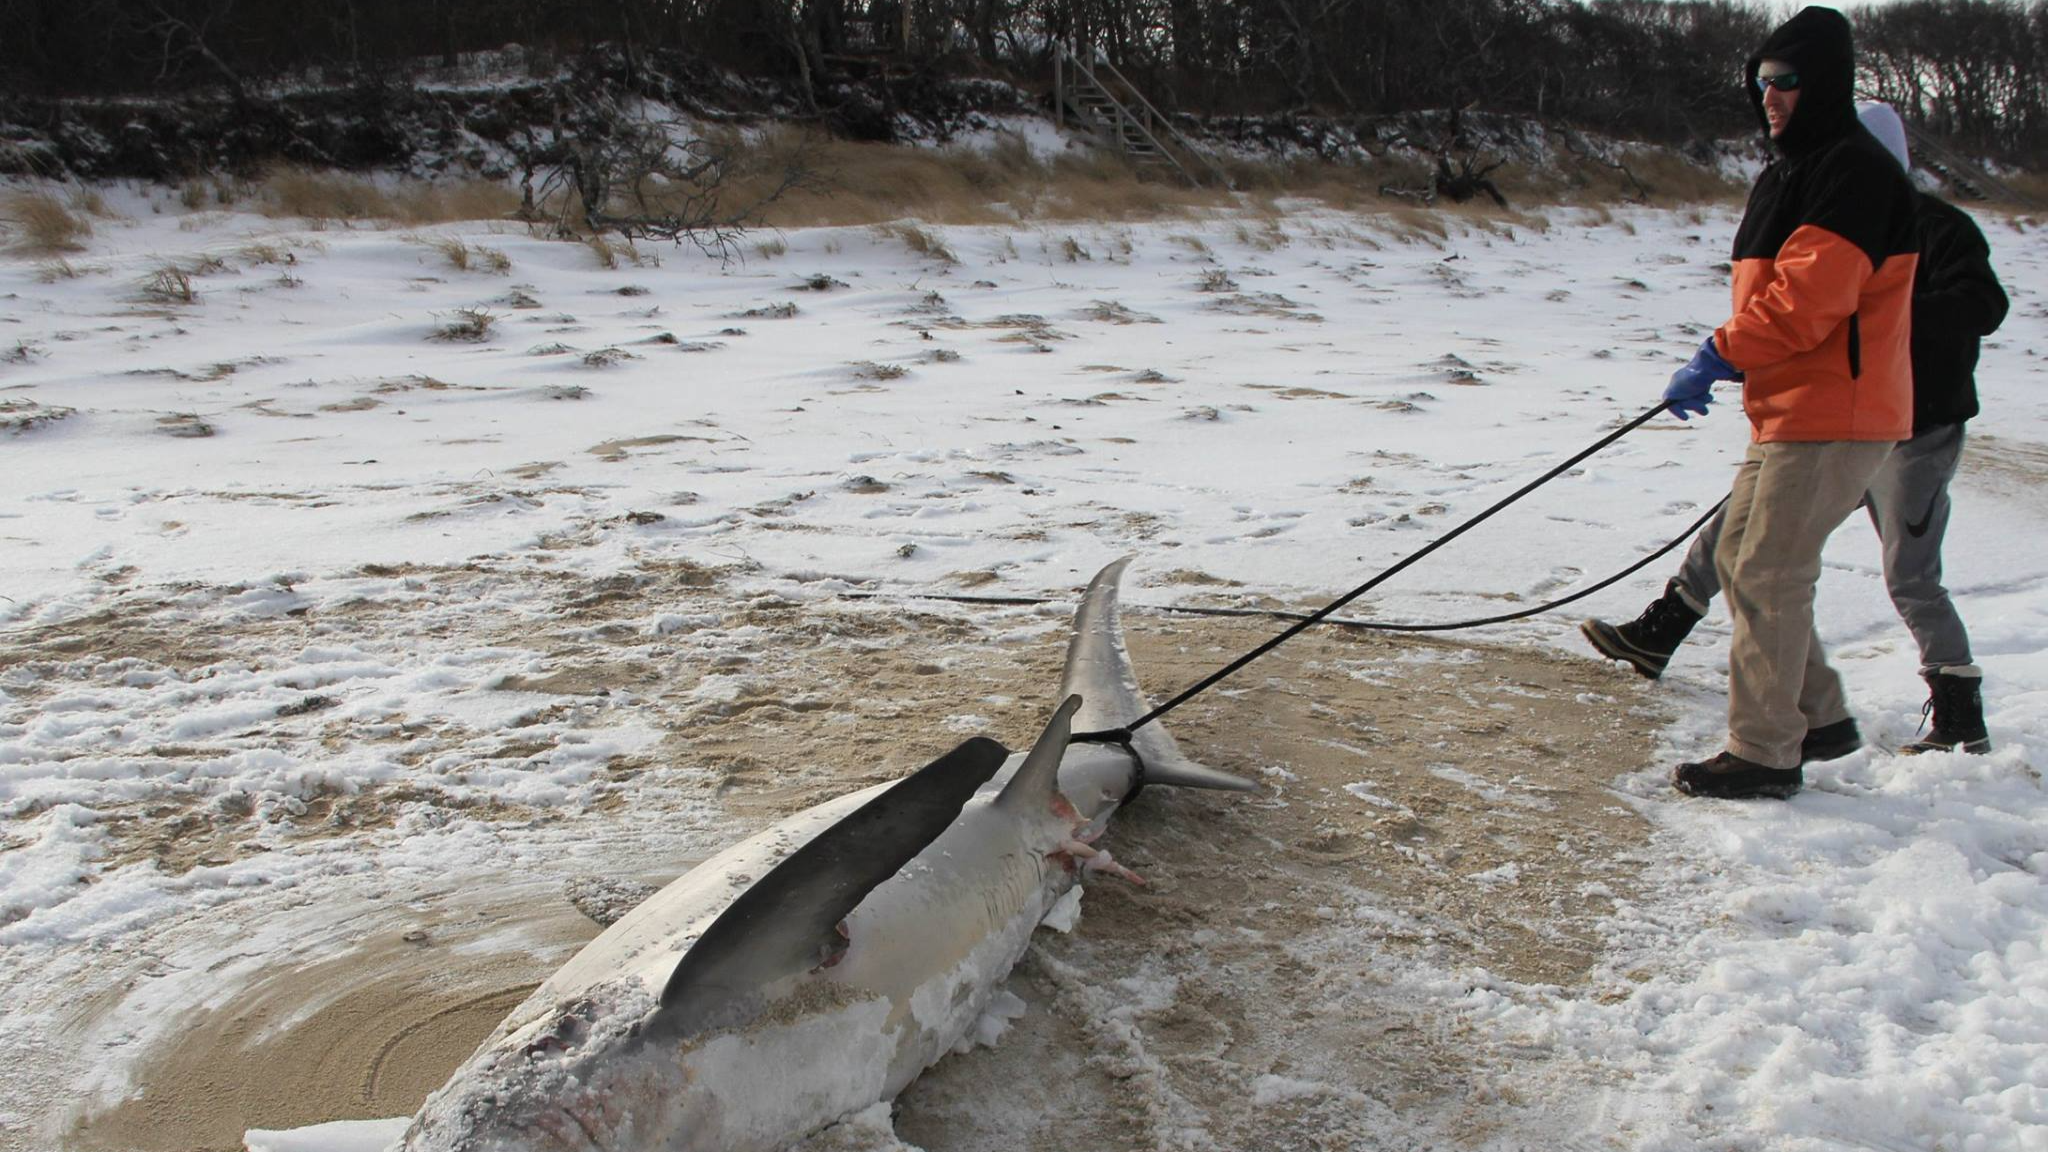 Sharks 'Freezing To Death' As Temperatures Drop In Cape Cod